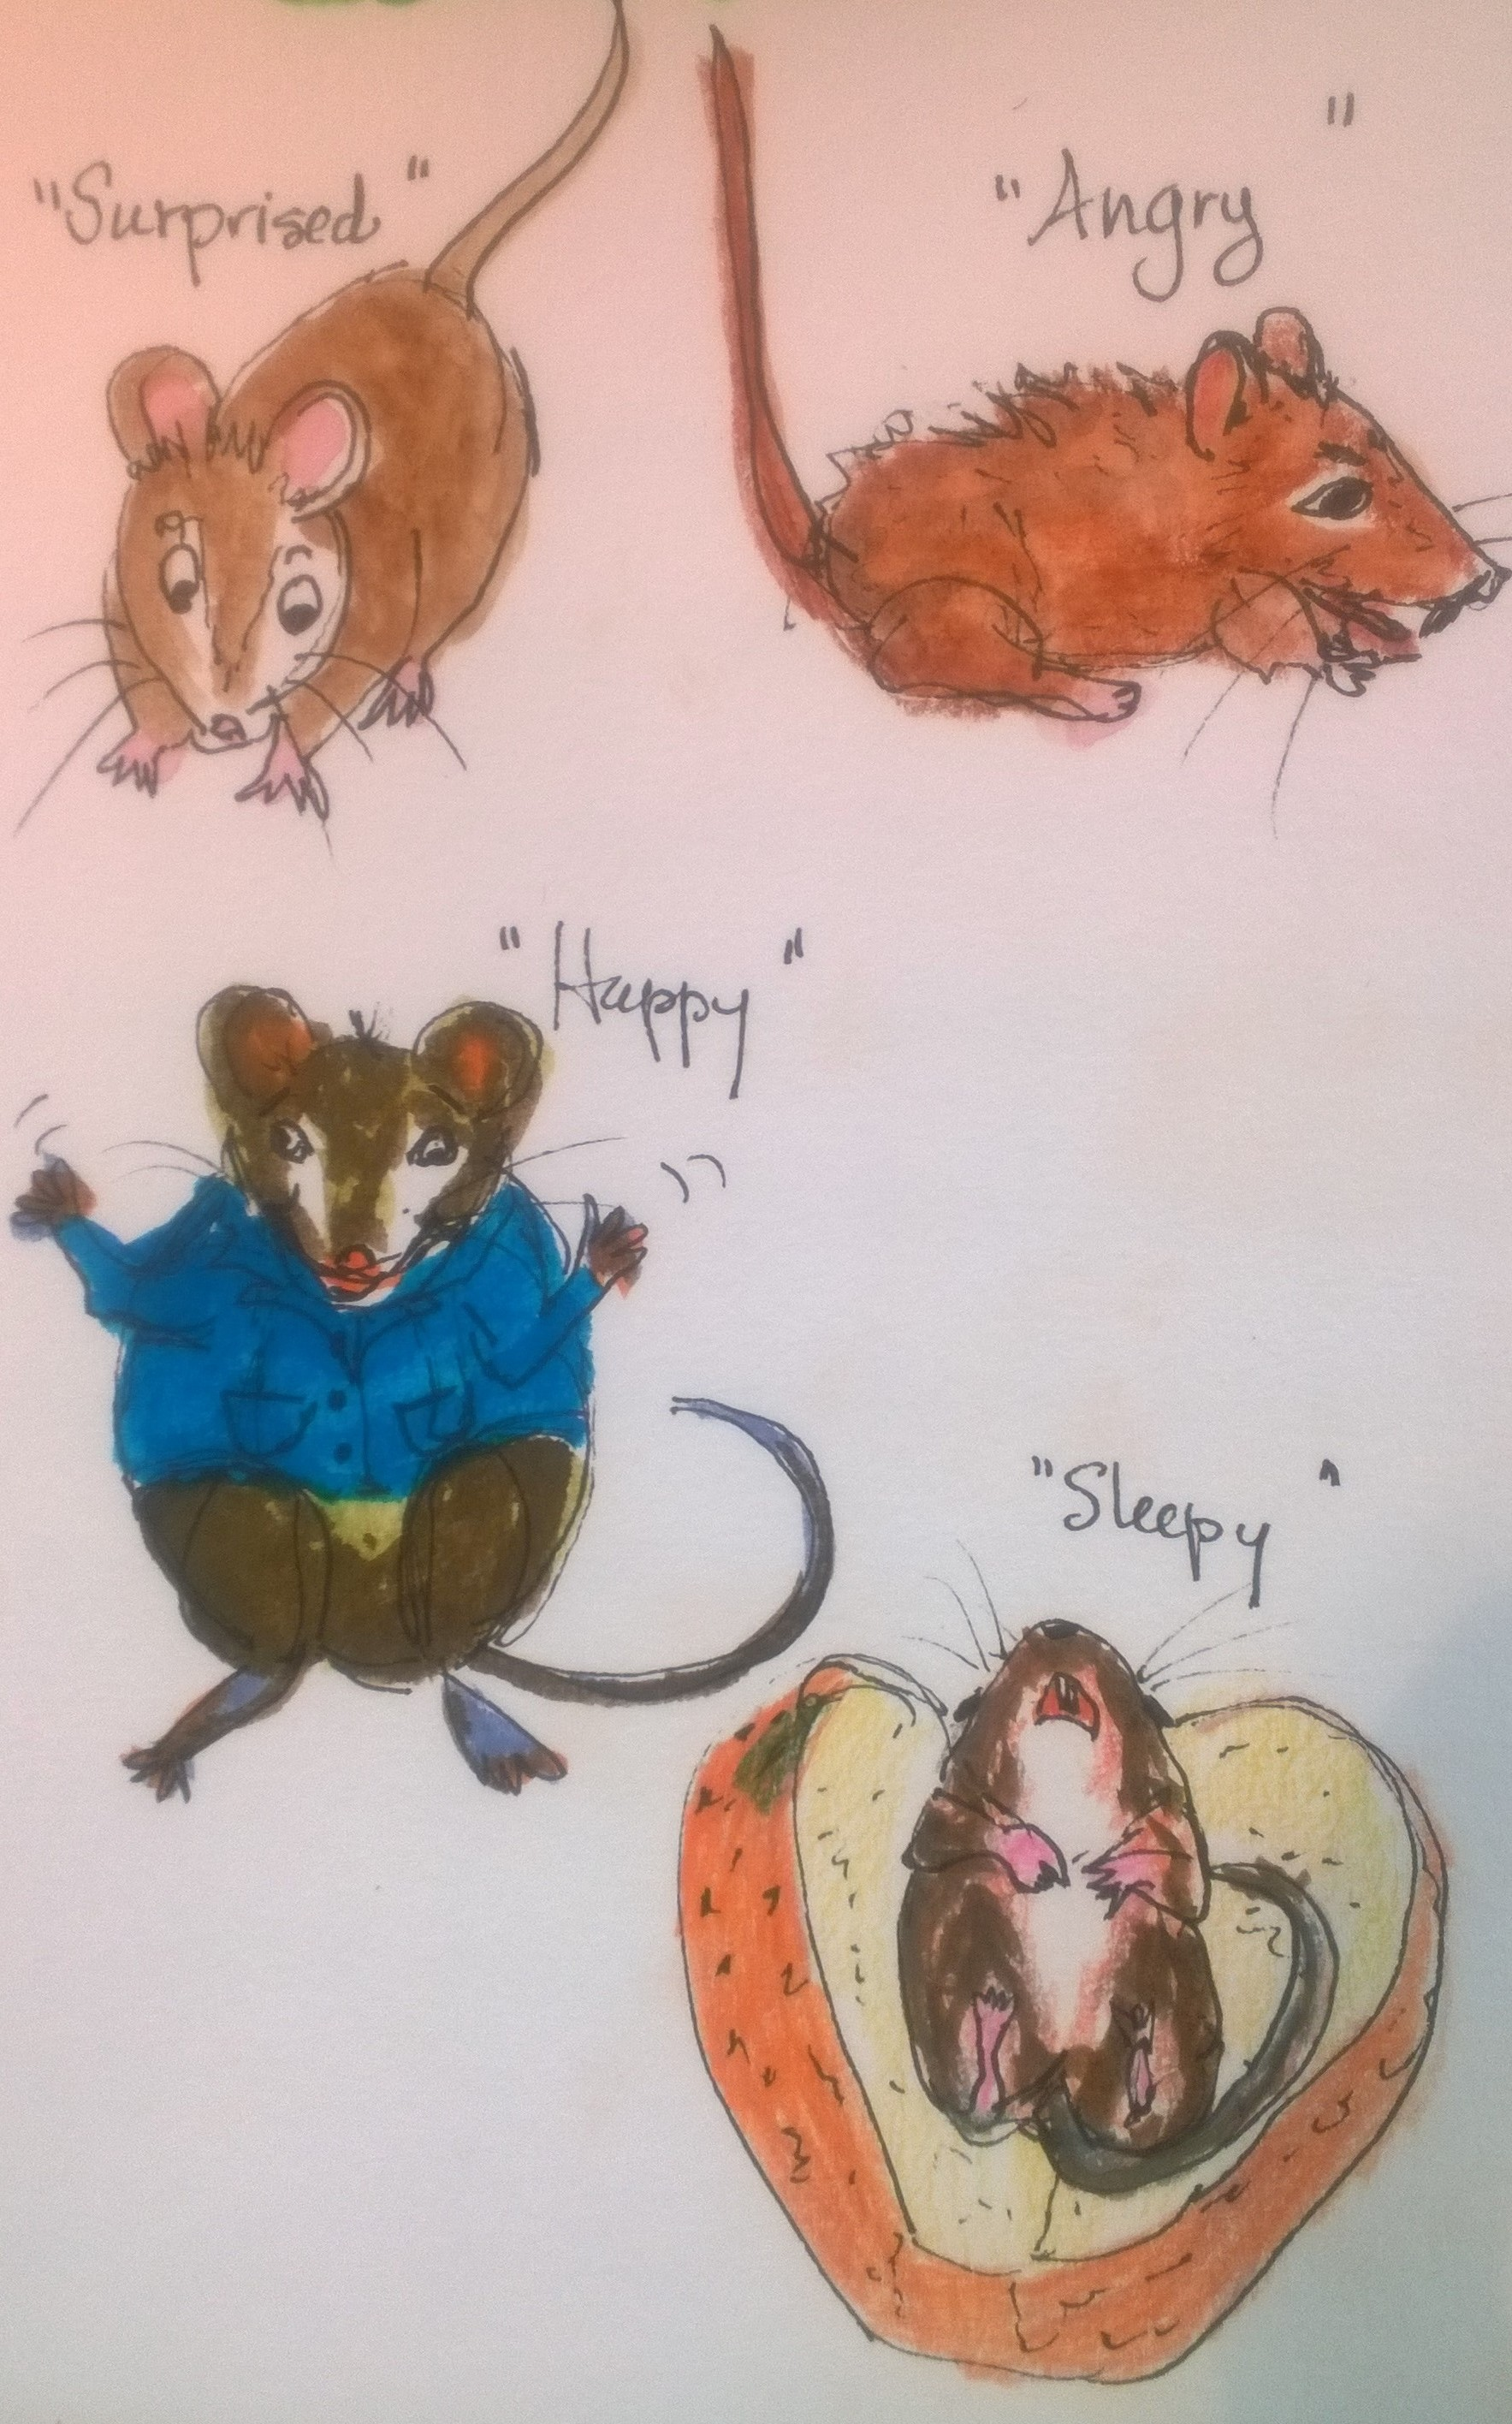 I am in between travel sketchbooks right now, so that I would share some of the playing that I have been doing this summer in the Whimsical Genre. My granddaughter is turning 3 next week. She loves hearing stories and telling stories, animals of all sorts, so I thought it would be fun to explore some illustrations of the animals we imagine in out stories. Mice are a favorite!